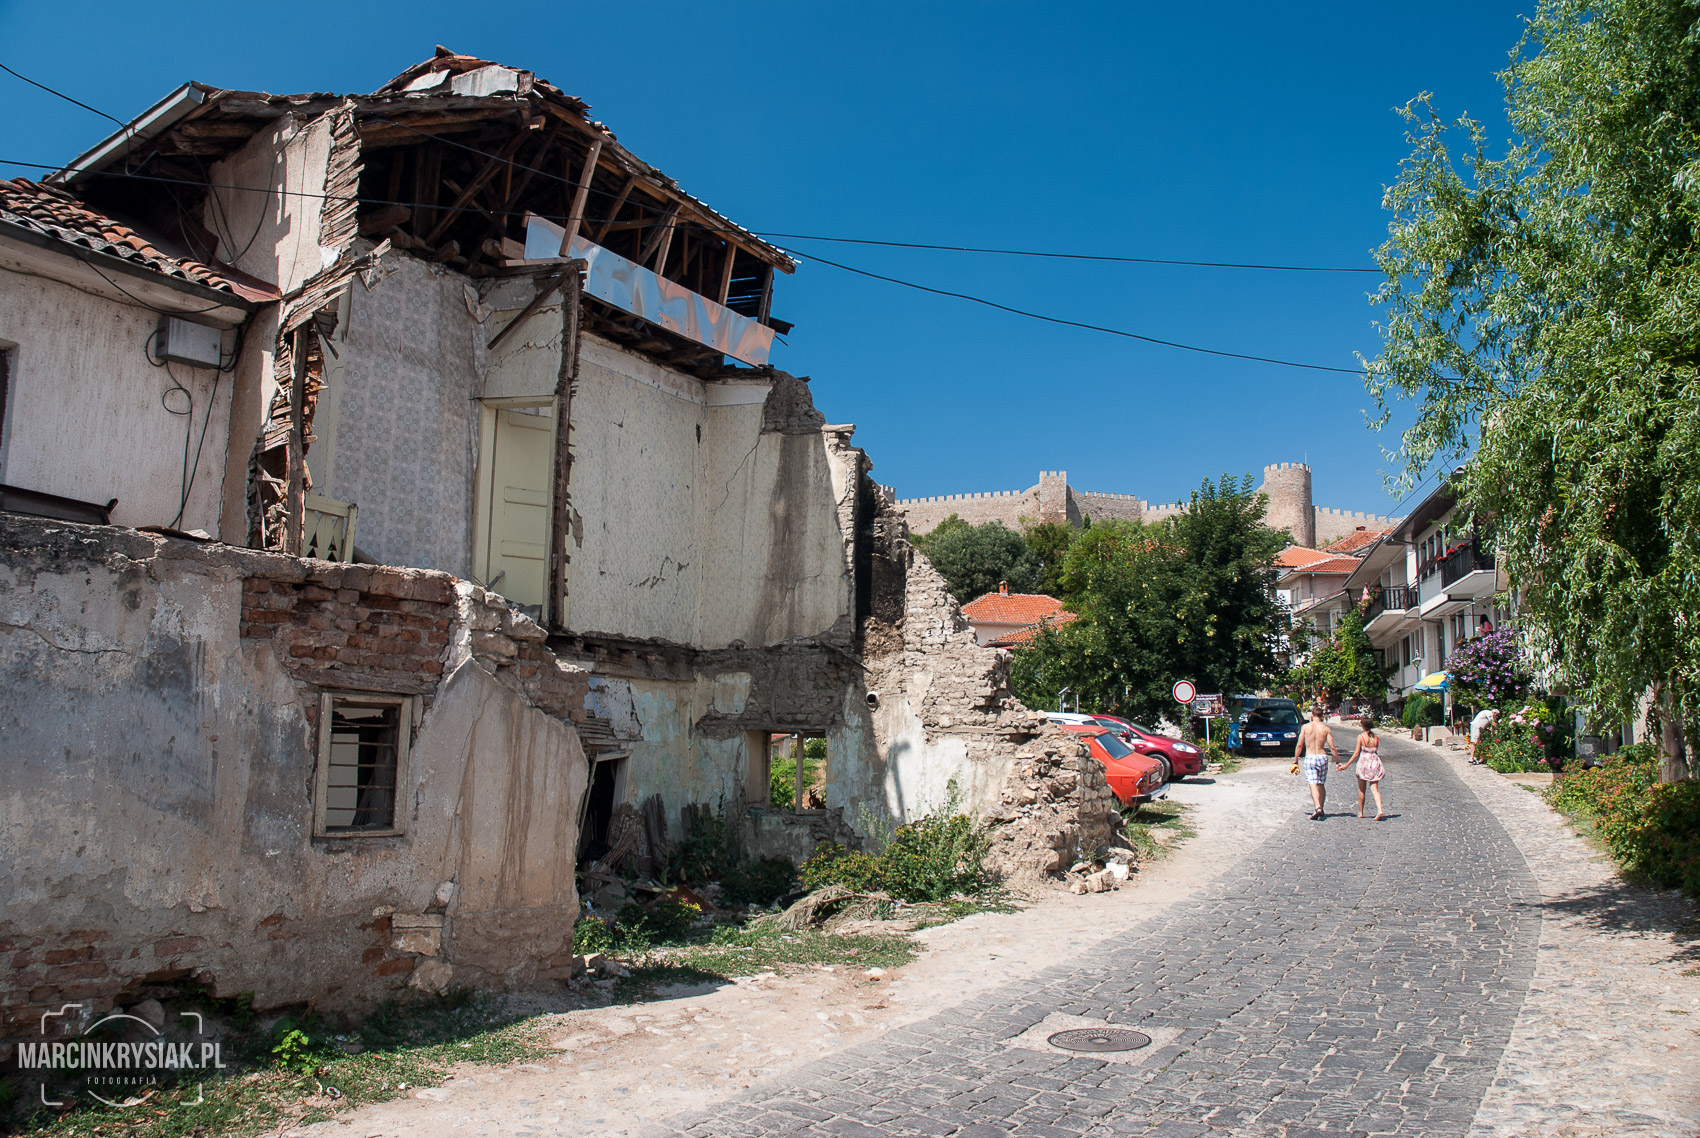 houses along the road in Ohrid, Macedonia